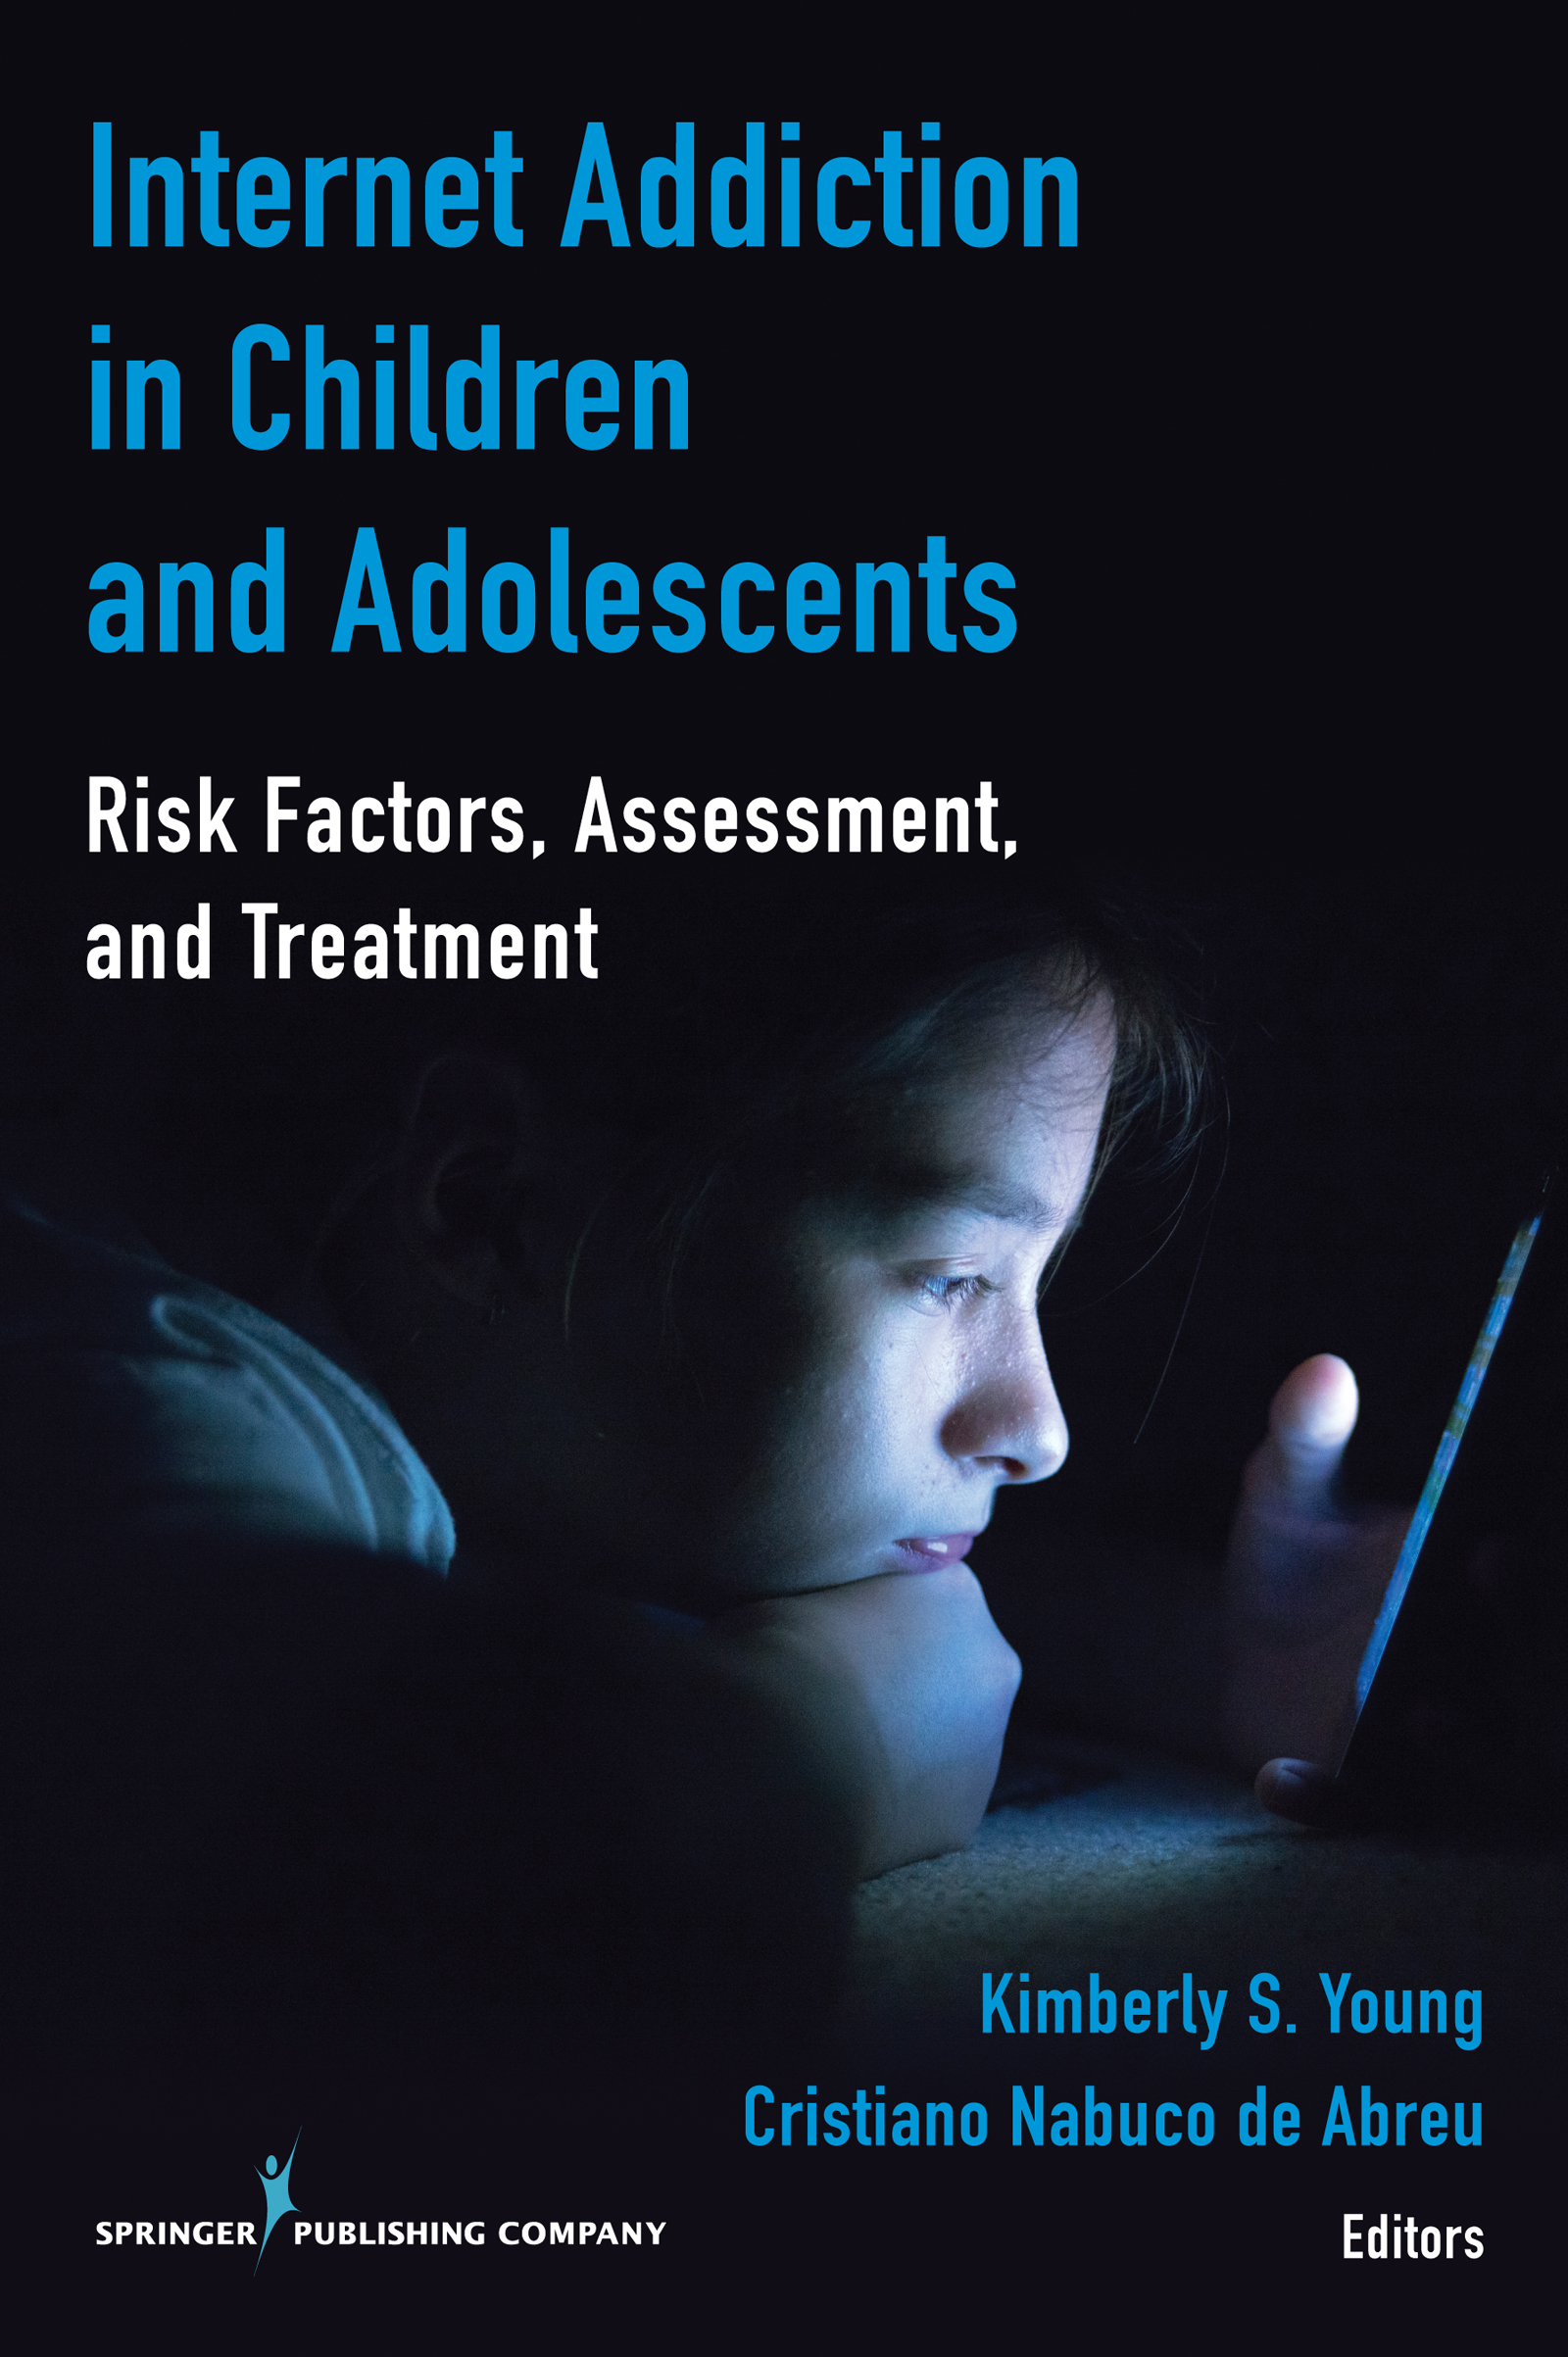 Narcissism and Social Media Use by Children and Adolescents